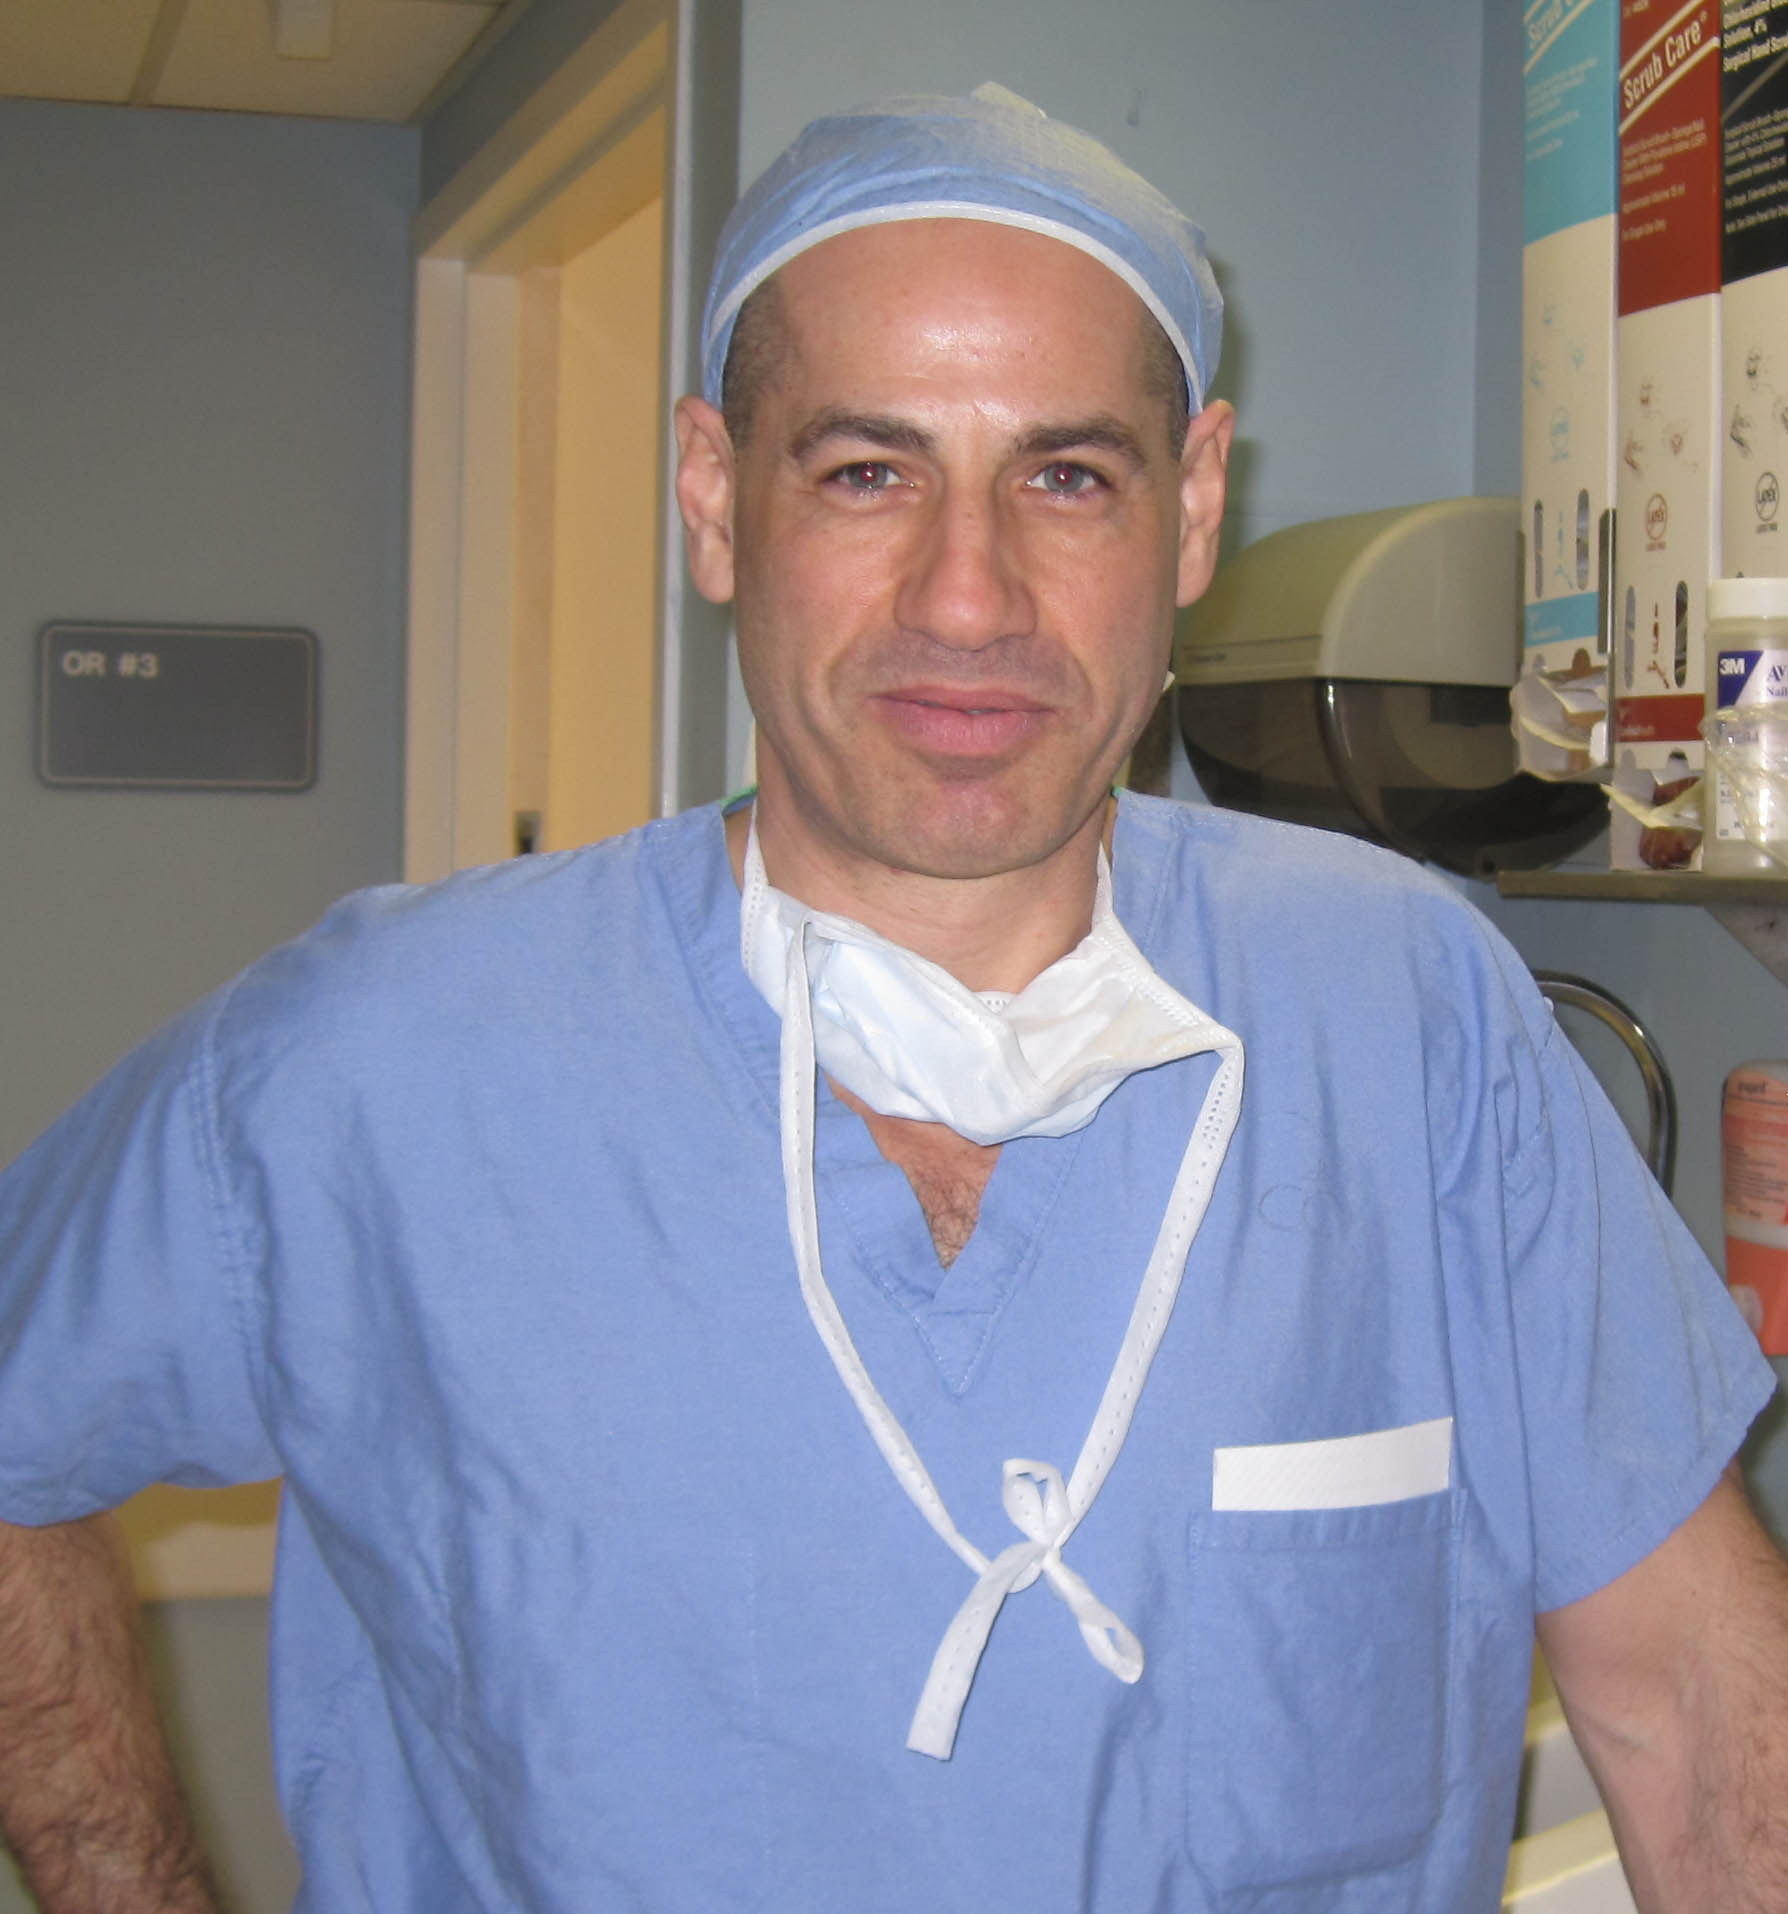 Dr. Lawrence Gordon performs Head and Neck Surgery for ENT Specialty Care in Orange County NY